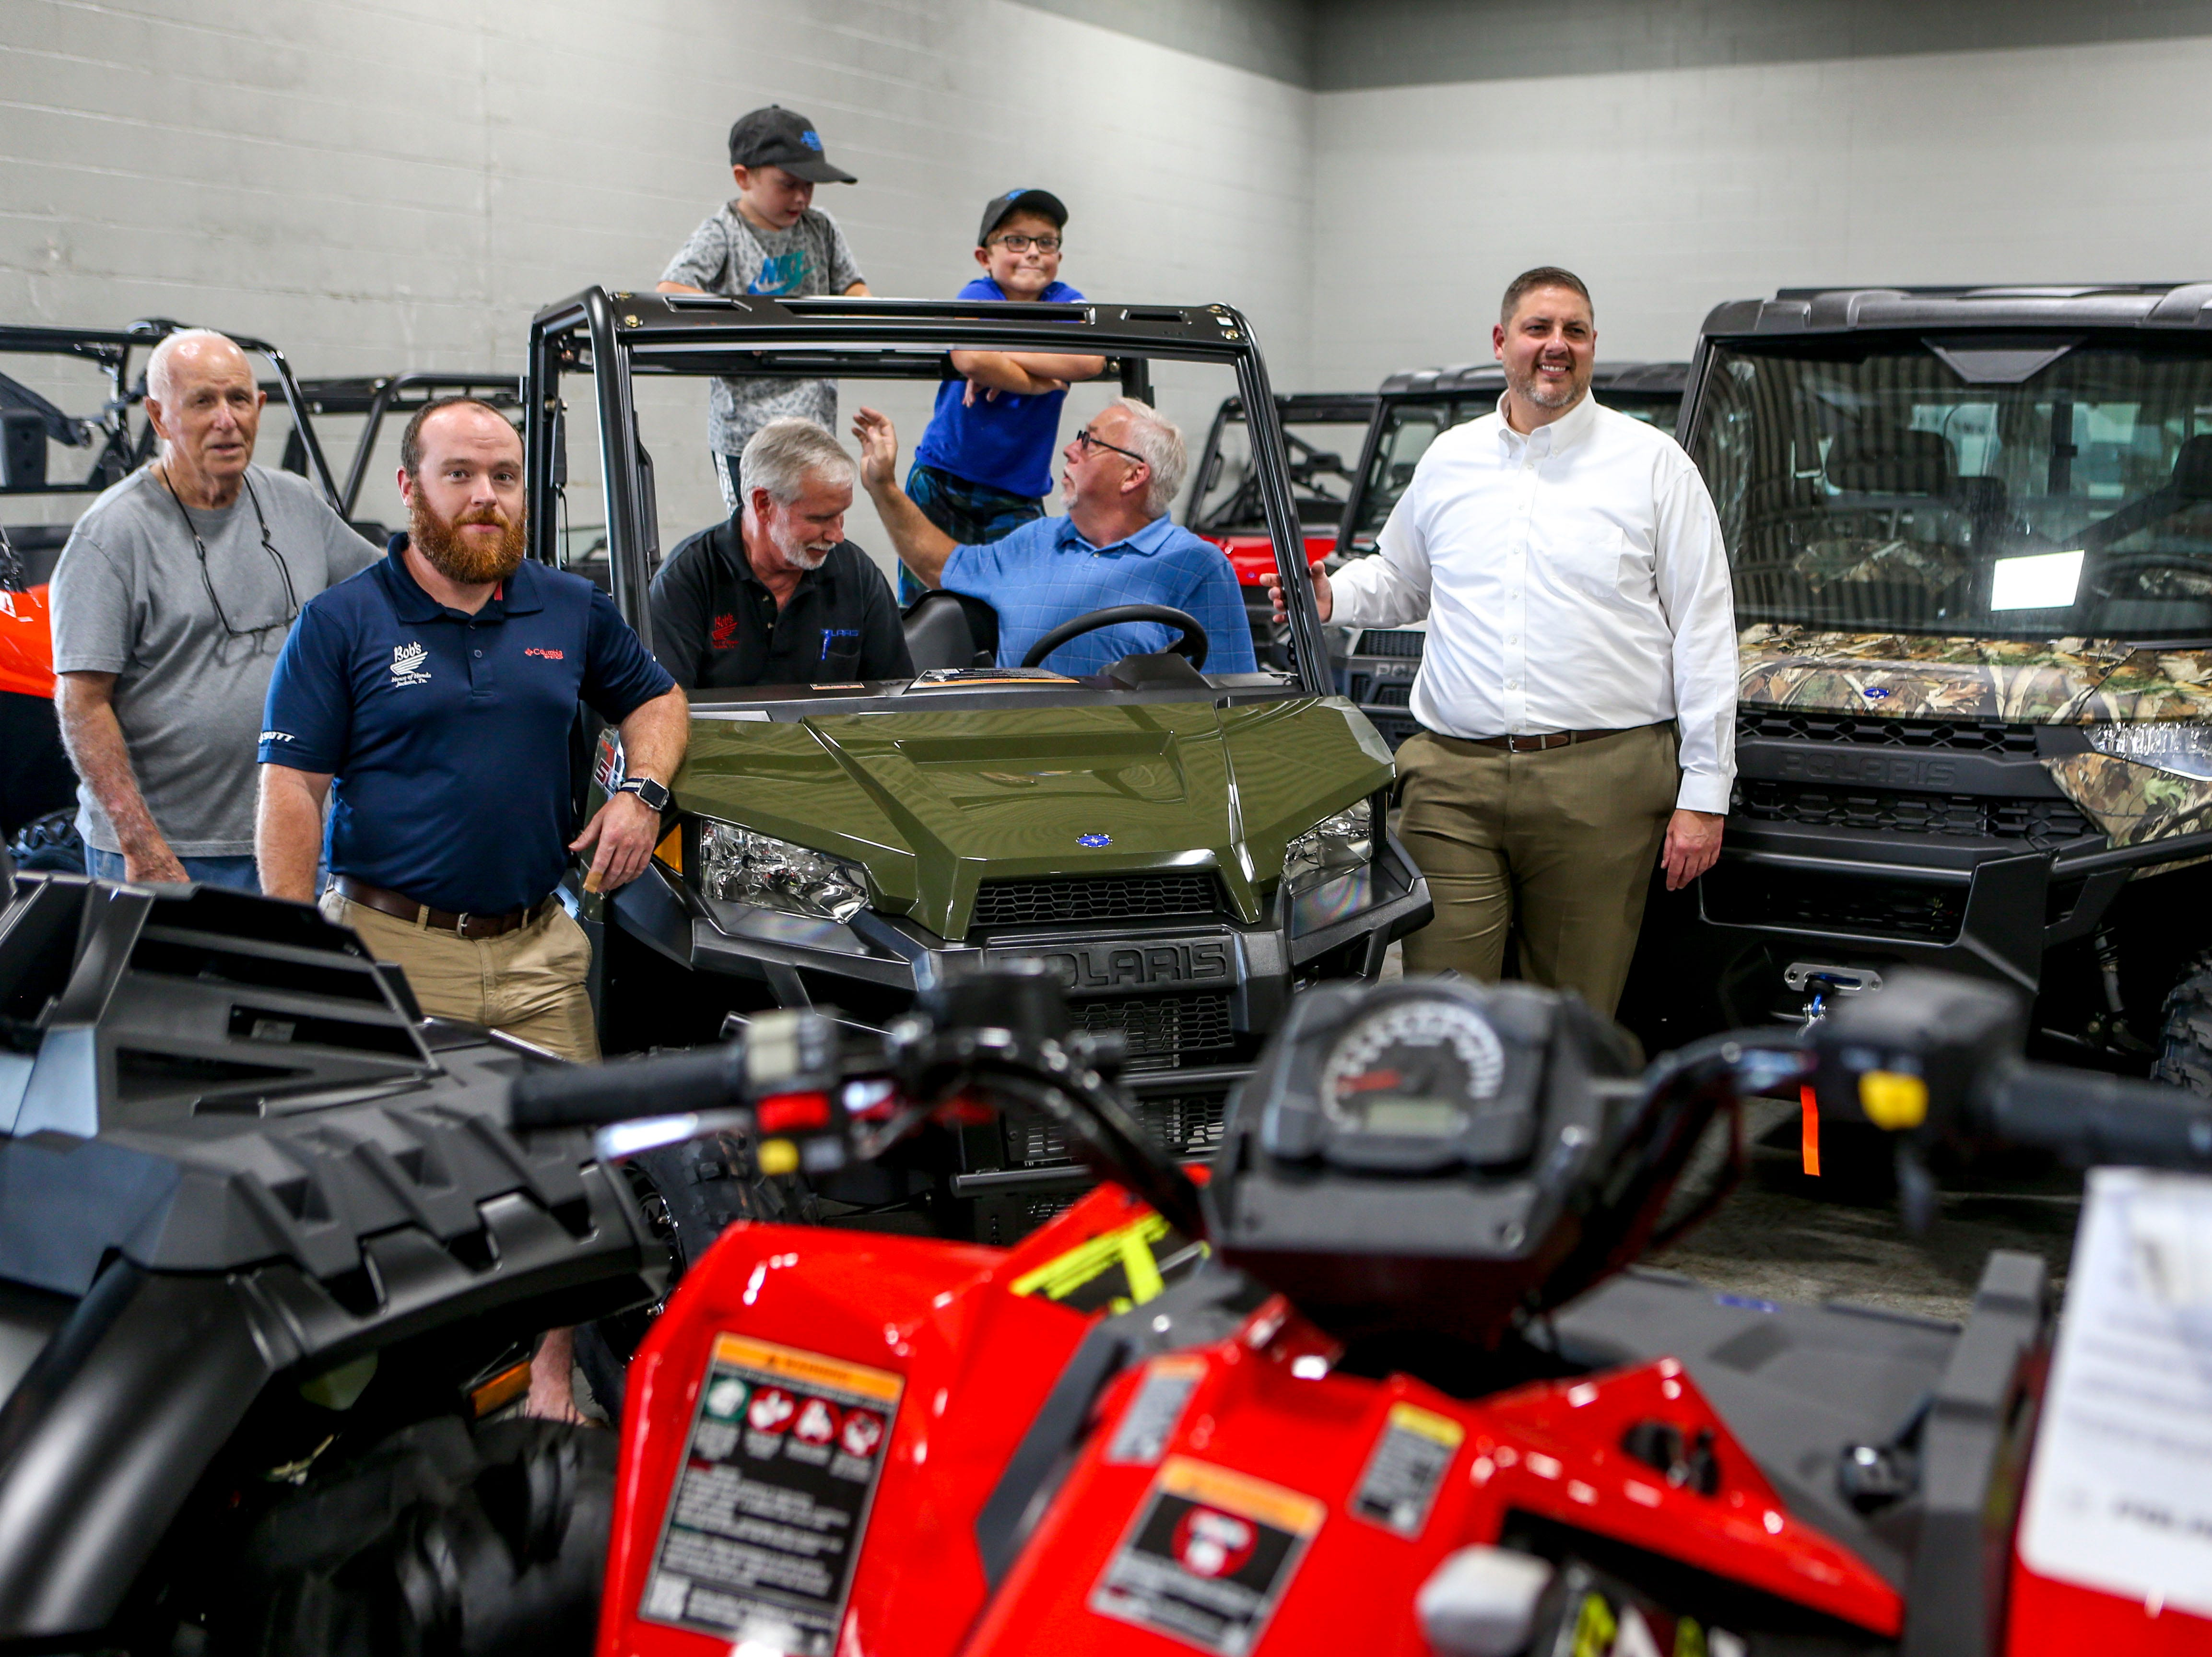 All three owners of Bob's House of Honda, the winner of the ATV John Coleman, center, Coleman's grandsons John Patrick Coleman, 4, and Bradley Coleman, 8, and John Miller, CEO of Lifeline Blood Services, right, pose with a model of the Polaris ATV given away in a contest at Bob's House of Honda in Jackson, Tenn., on Thursday, Sept. 20, 2018.